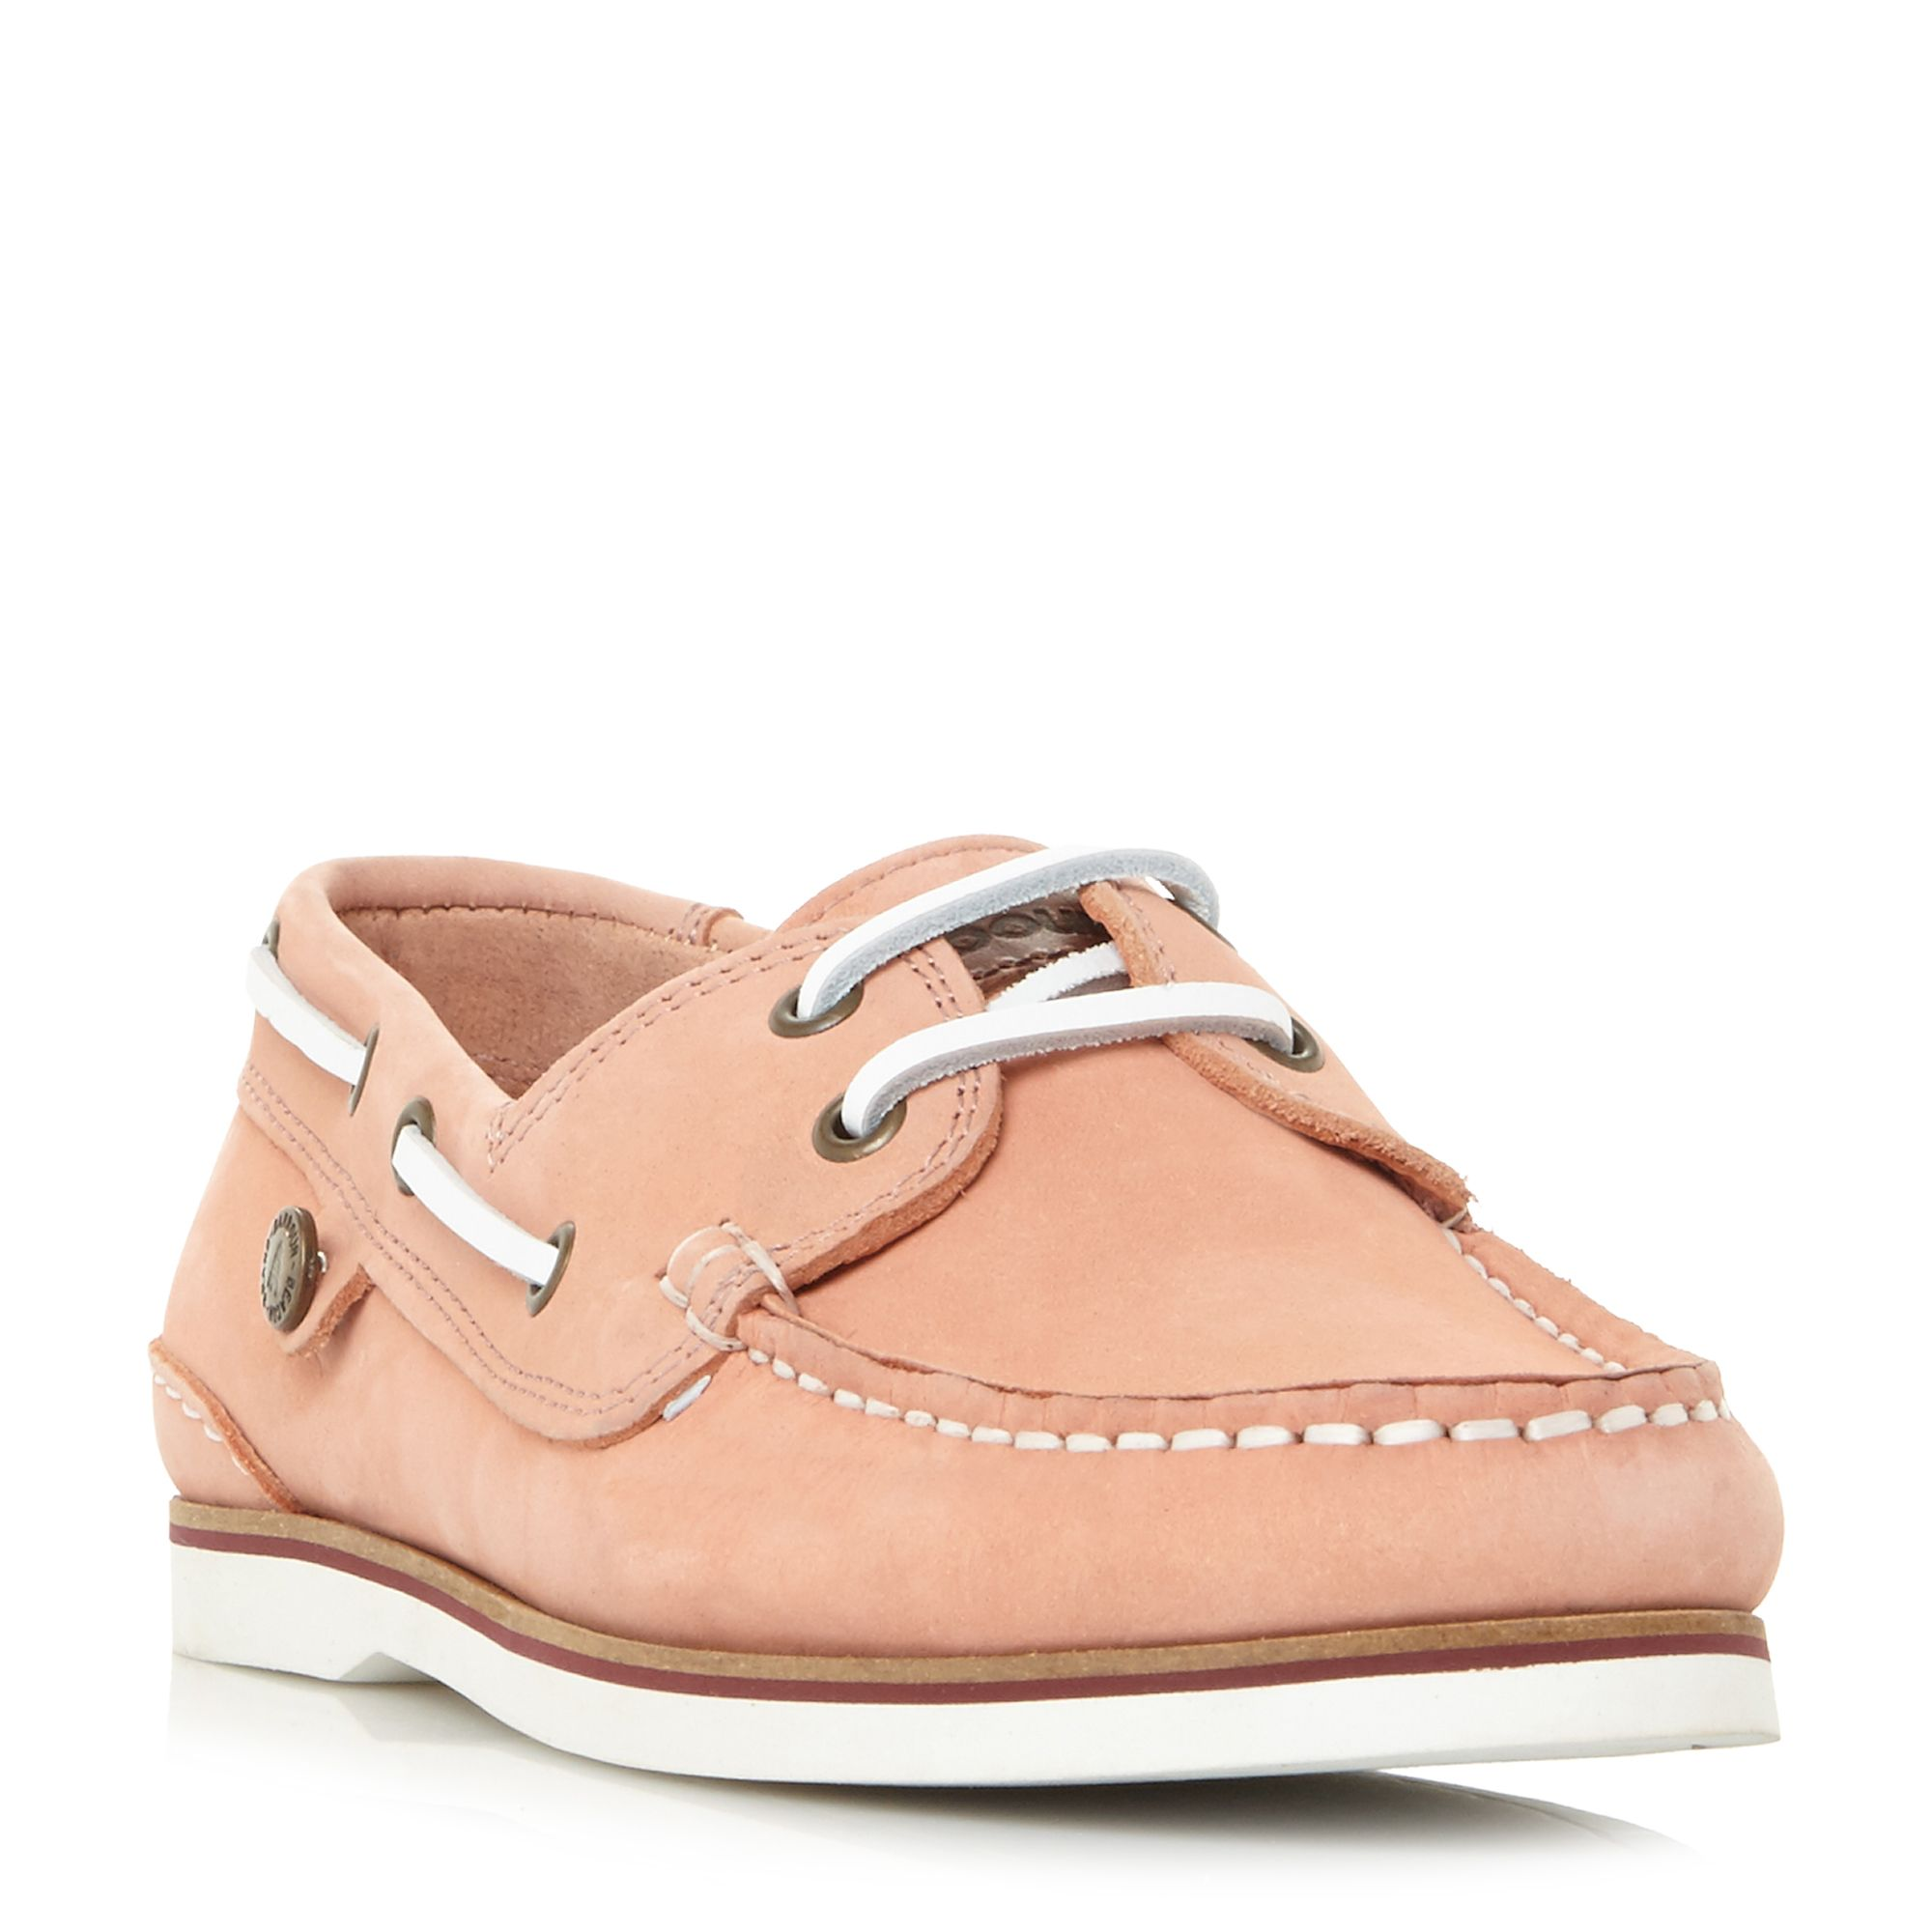 Barbour Bowline Boat Shoes, Nude